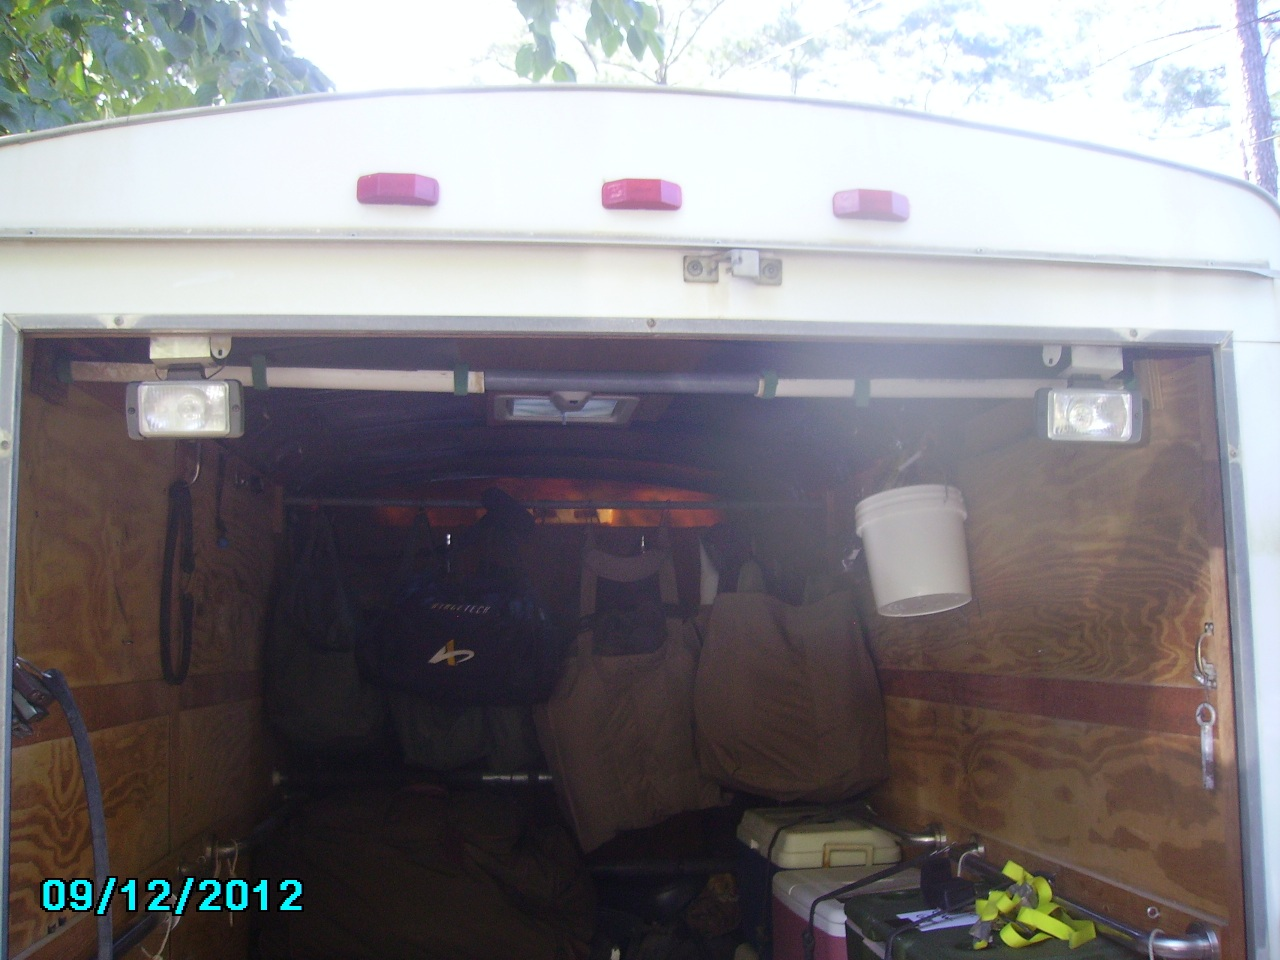 Trailer flood lights 0016.jpg